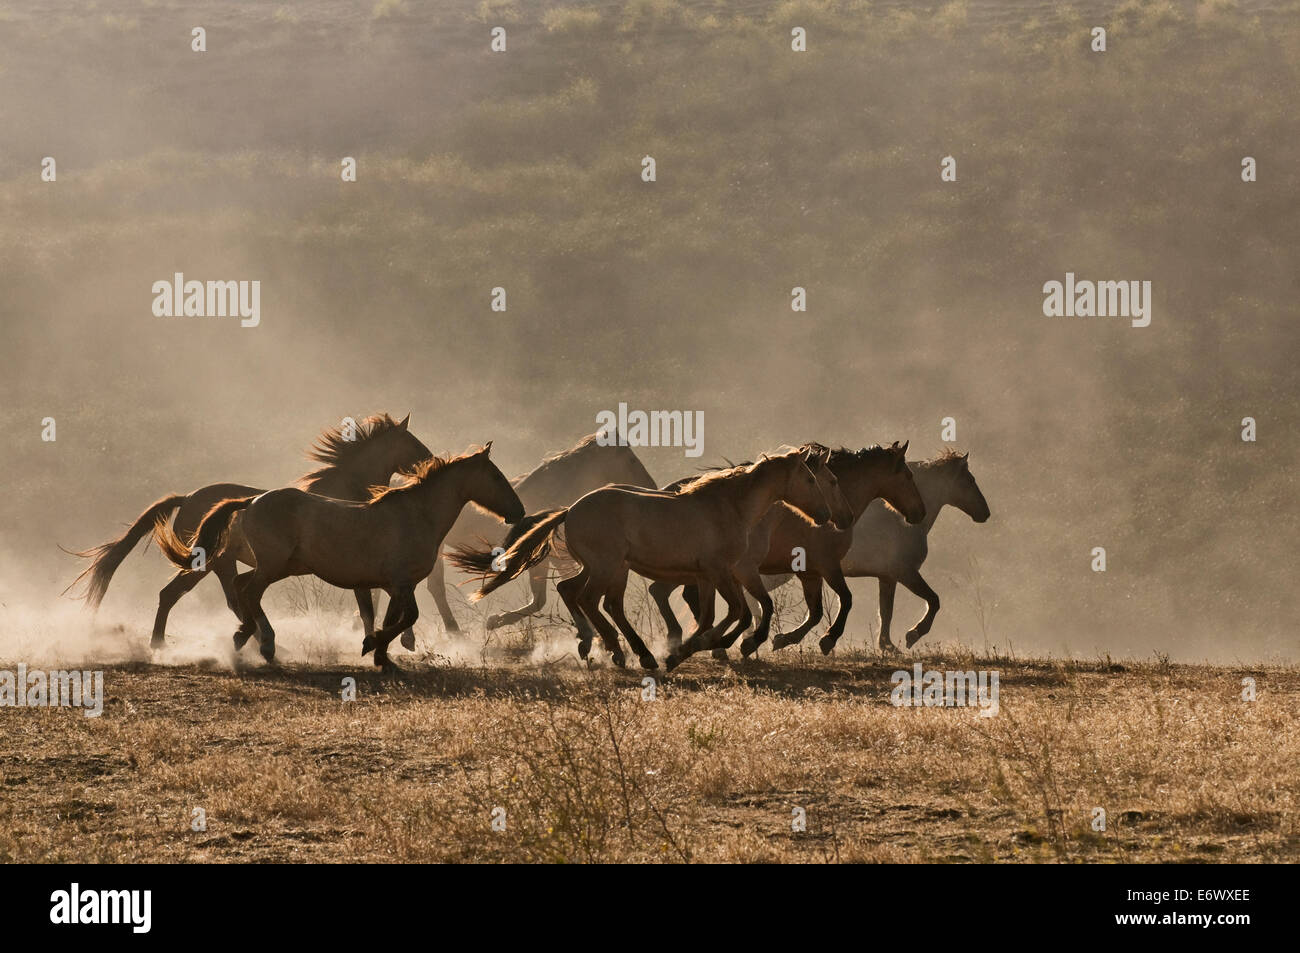 Wild Mustangs Sunset High Resolution Stock Photography And Images Alamy